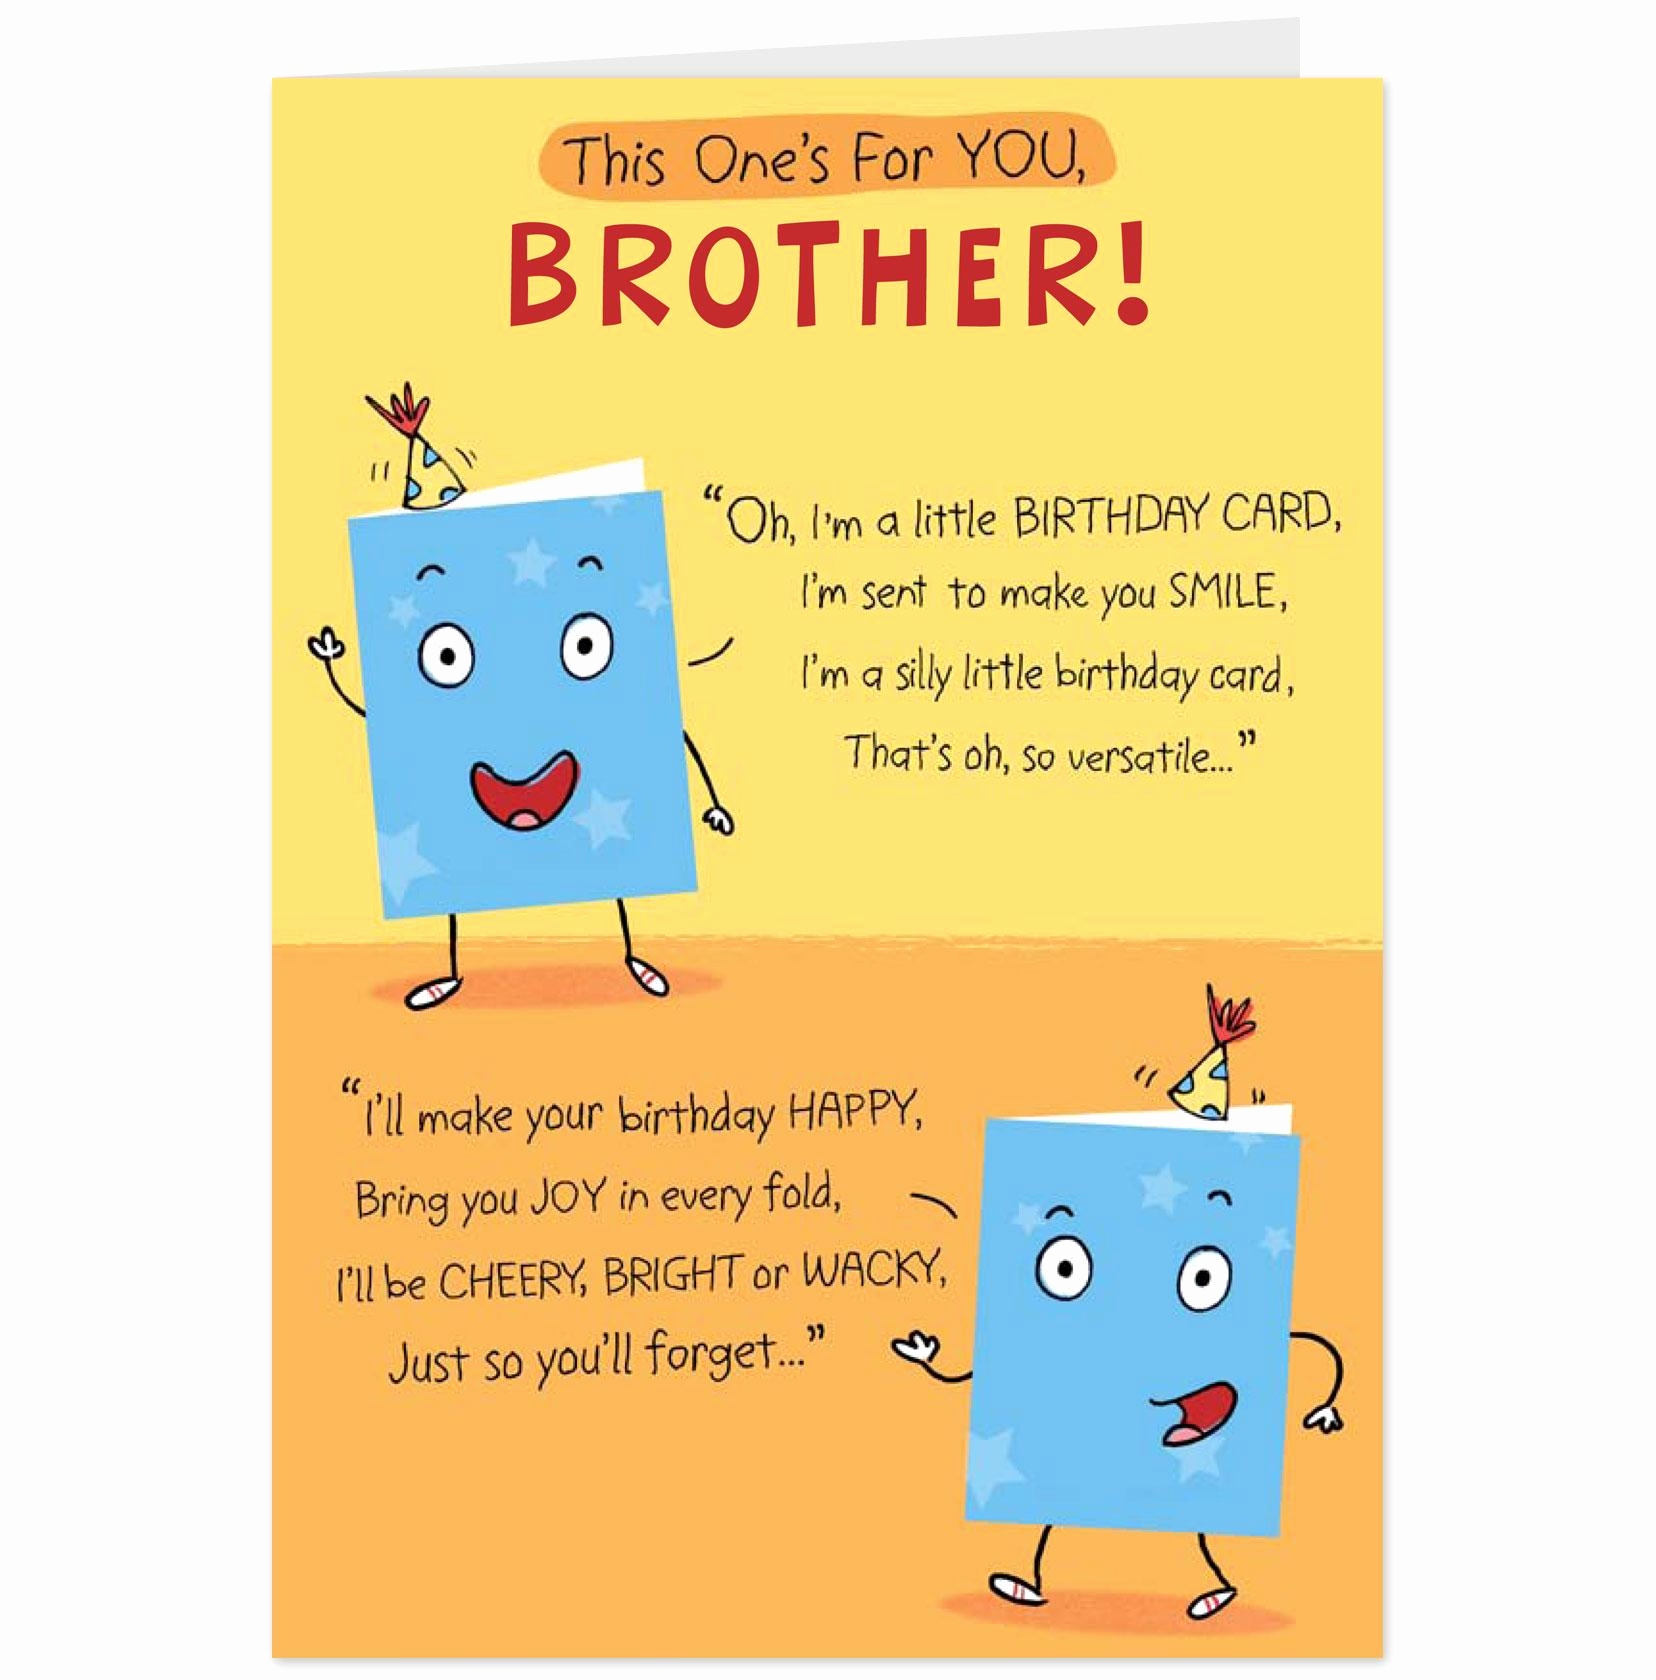 funny birthday card sayings for brother ; funny-birthday-card-sayings-beautiful-birthday-card-brother-my-birthday-pinterest-of-funny-birthday-card-sayings